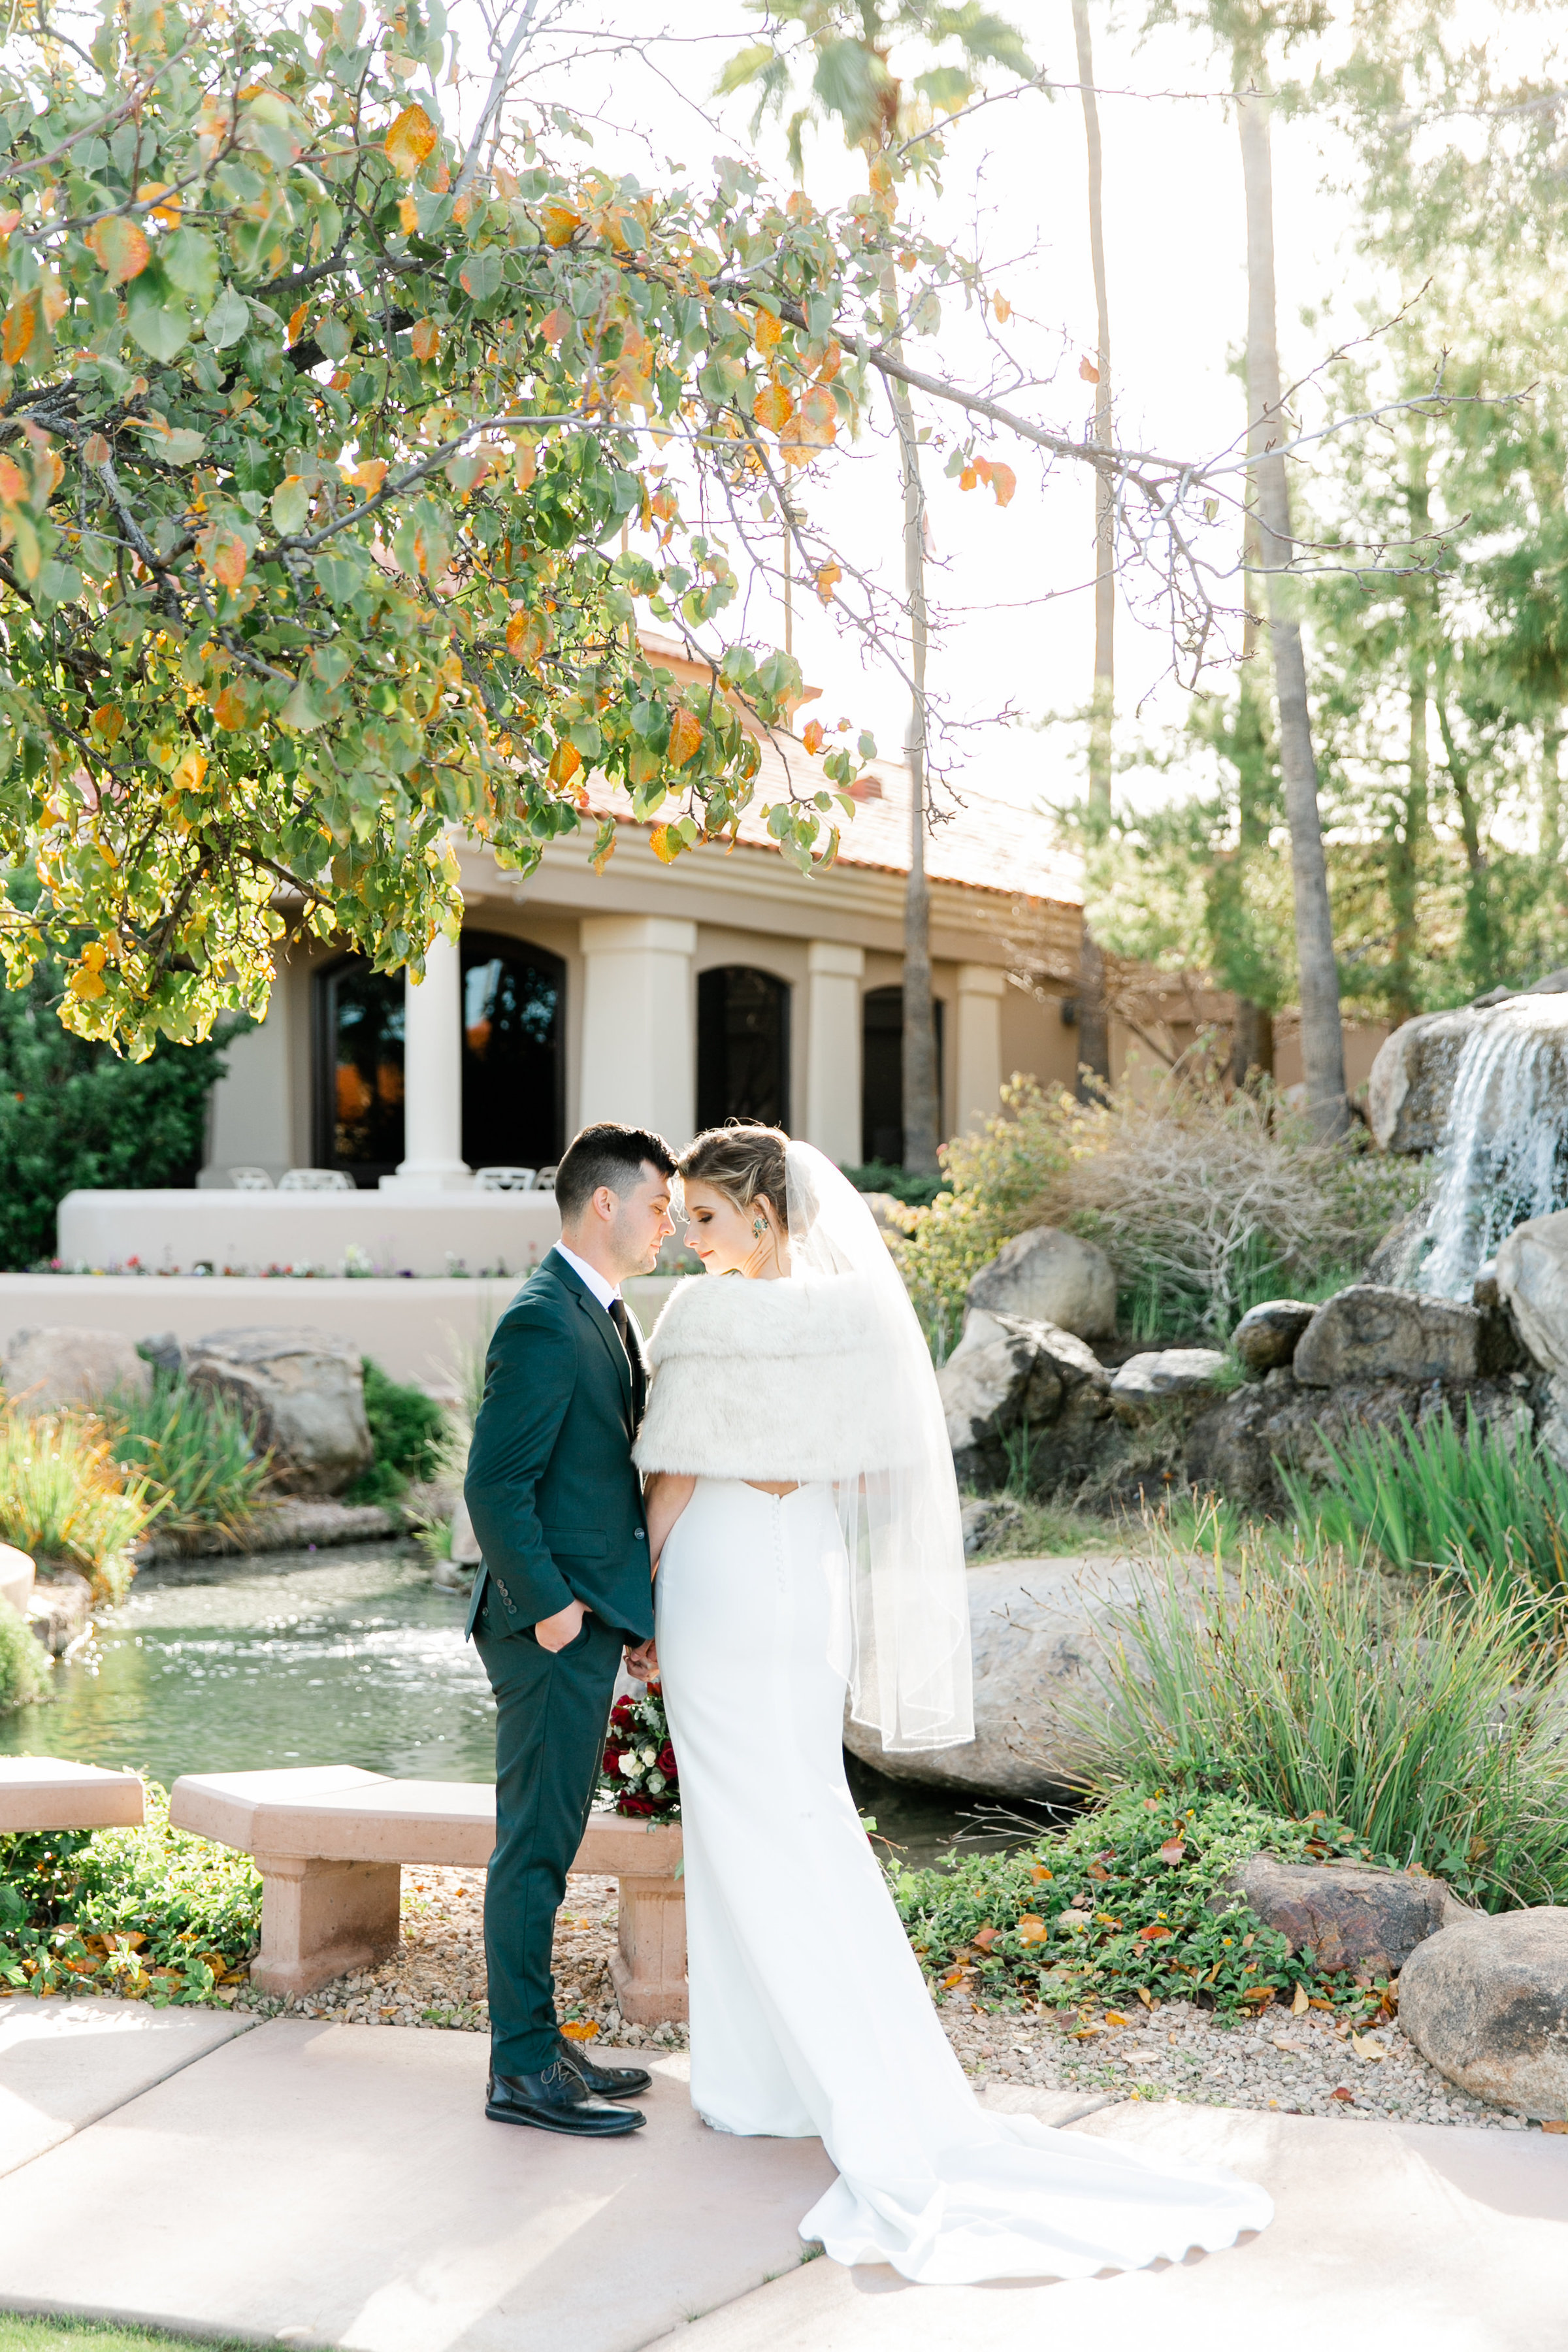 Karlie Colleen Photography - Gilbert Arizona Wedding - Val Vista Lakes - Brynne & Josh-466